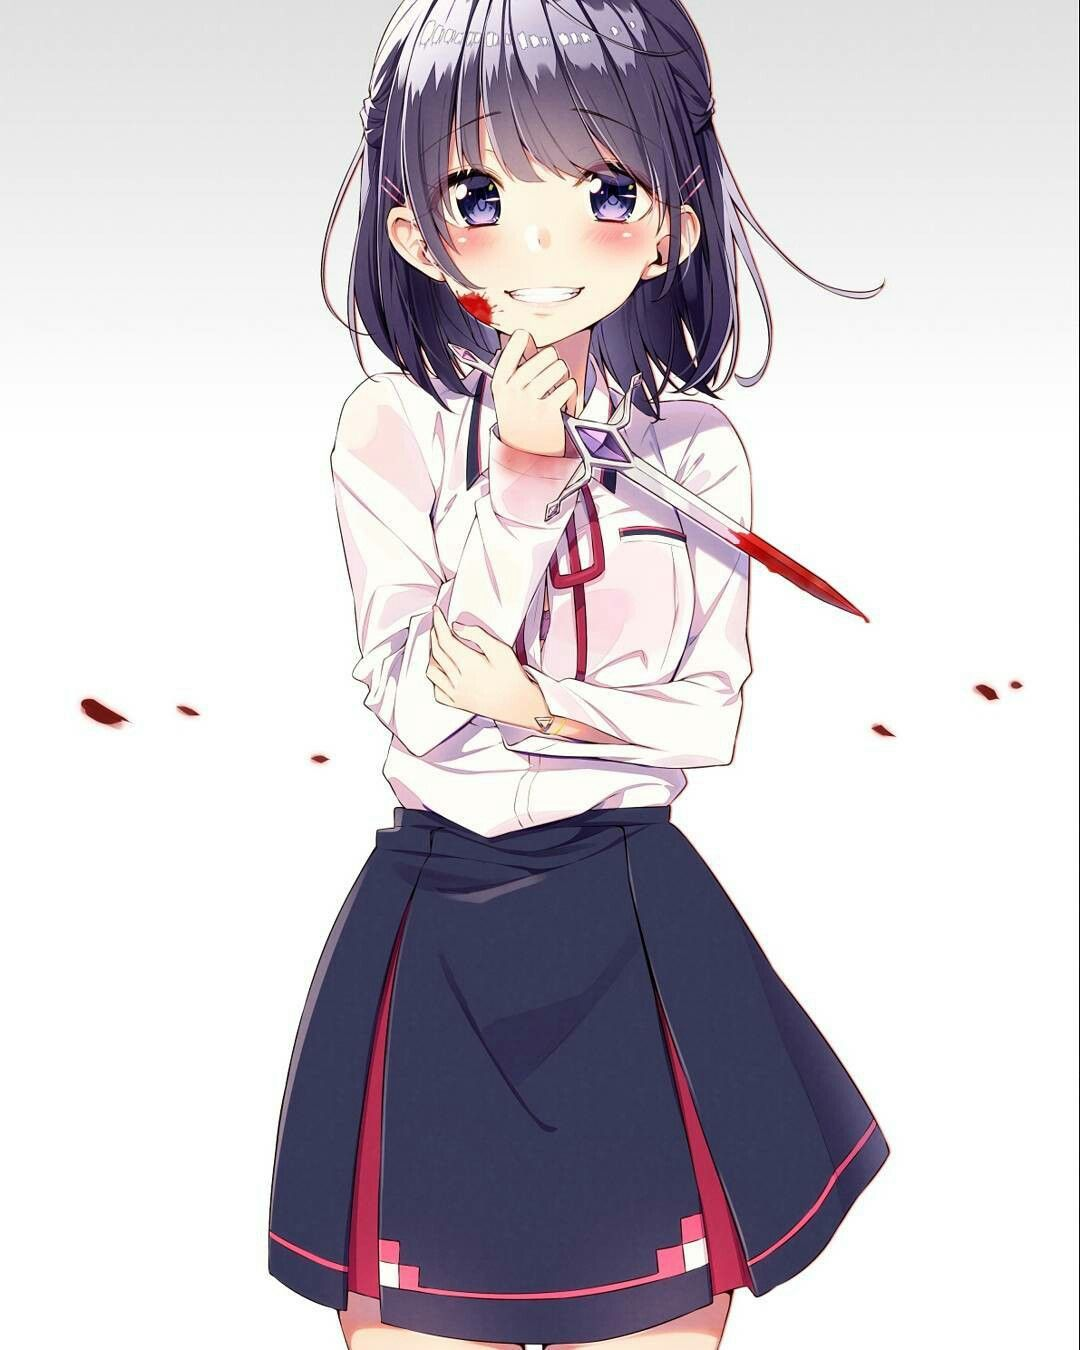 Assassin cute anime girl yandere